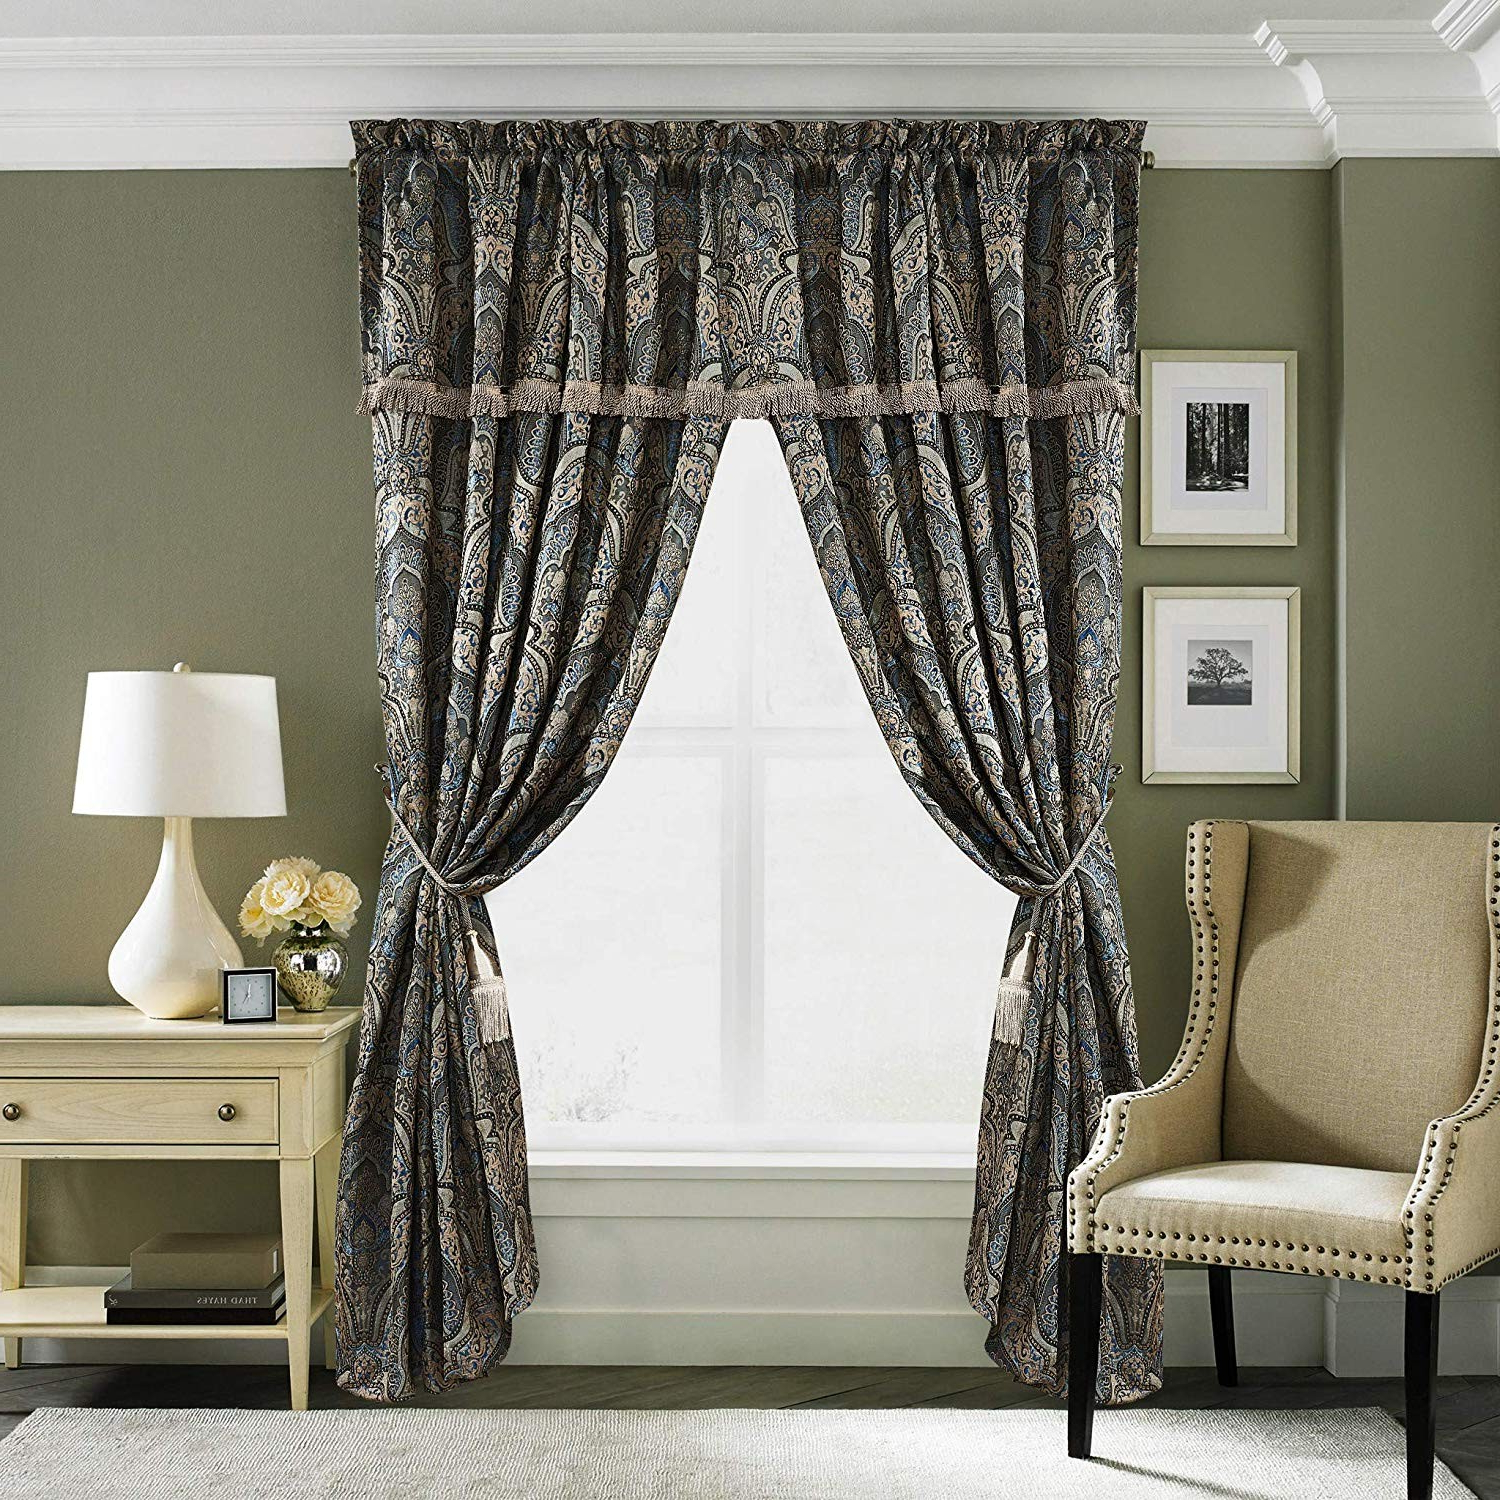 Most Recently Released Seville 4 Piece Jacquard Medallion Paisley Window Curtain Intended For Medallion Window Curtain Valances (Gallery 17 of 20)